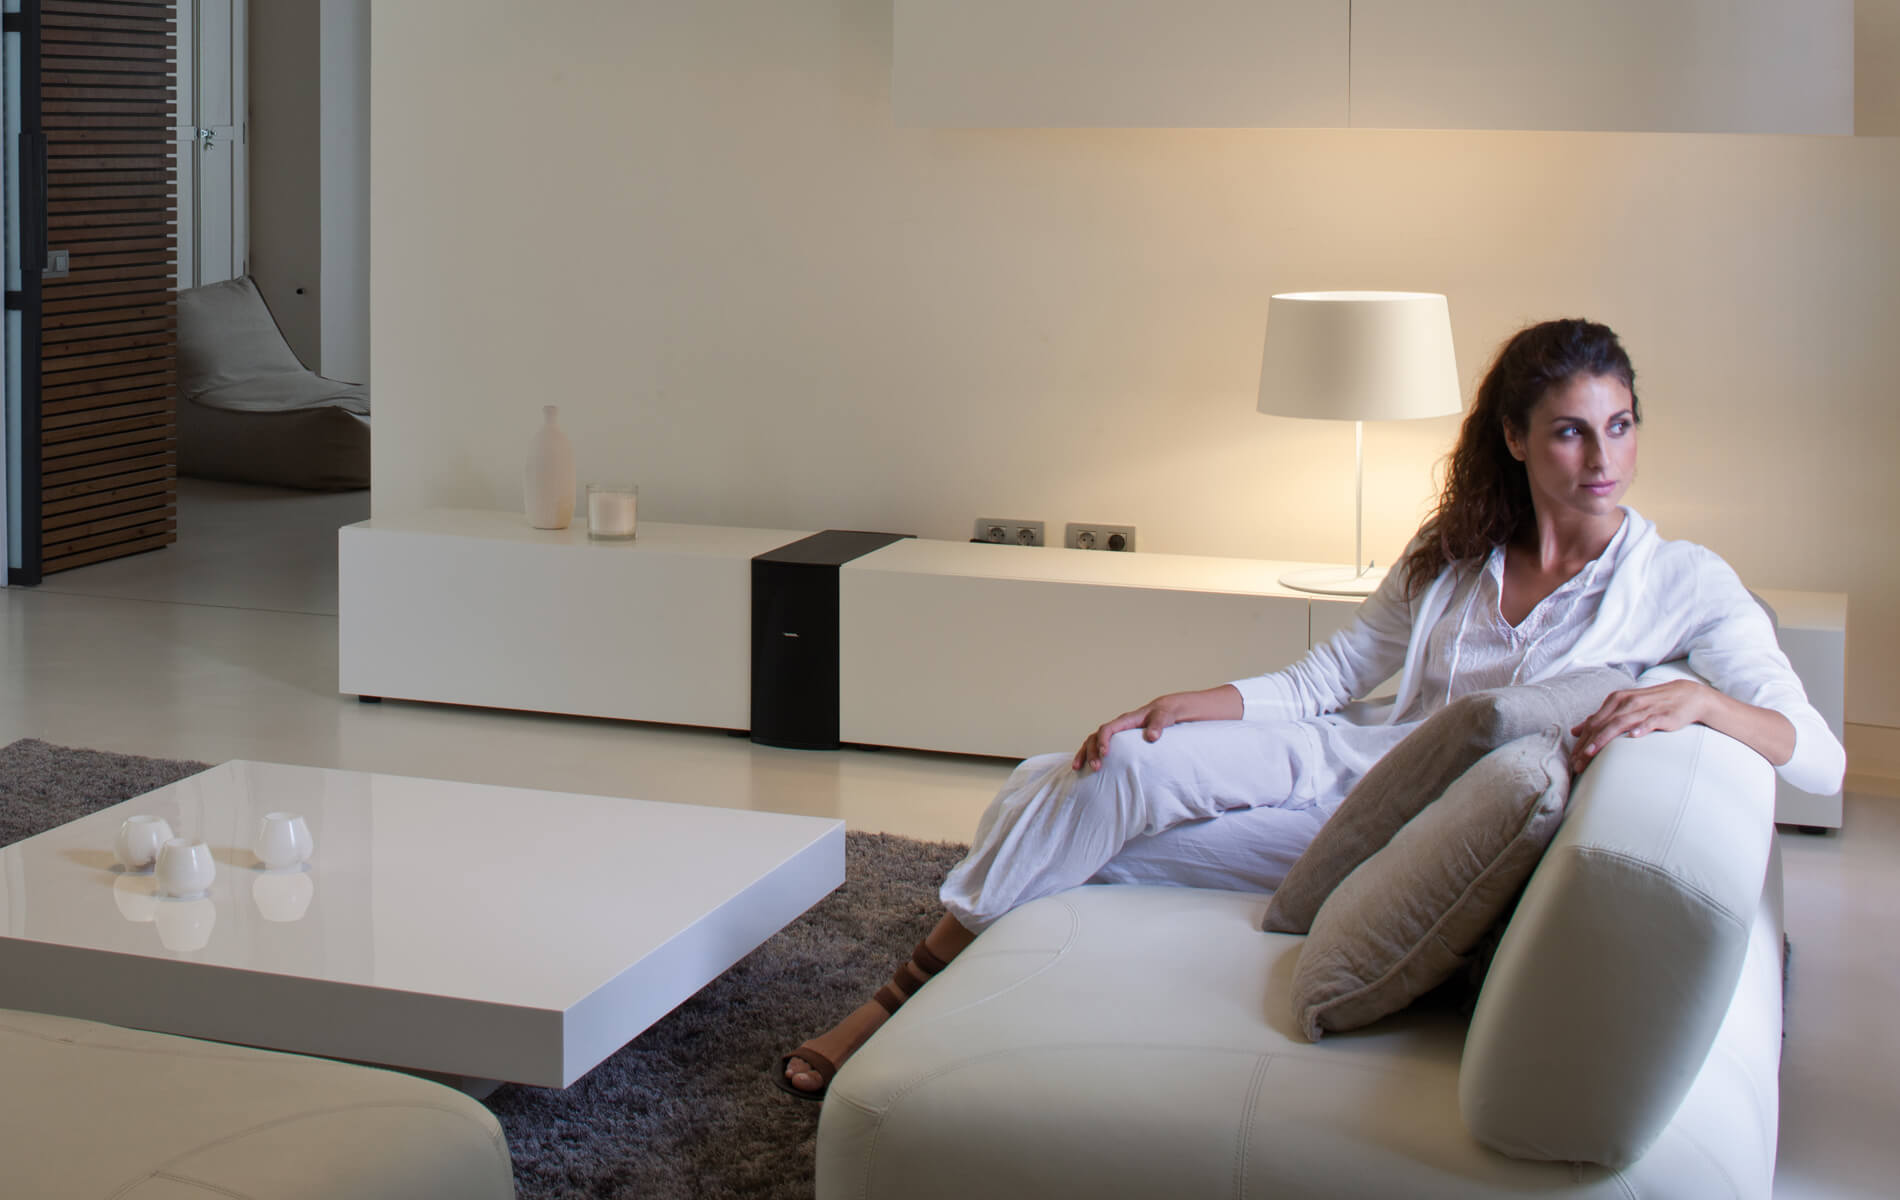 More information of Vibia WARM table lamp